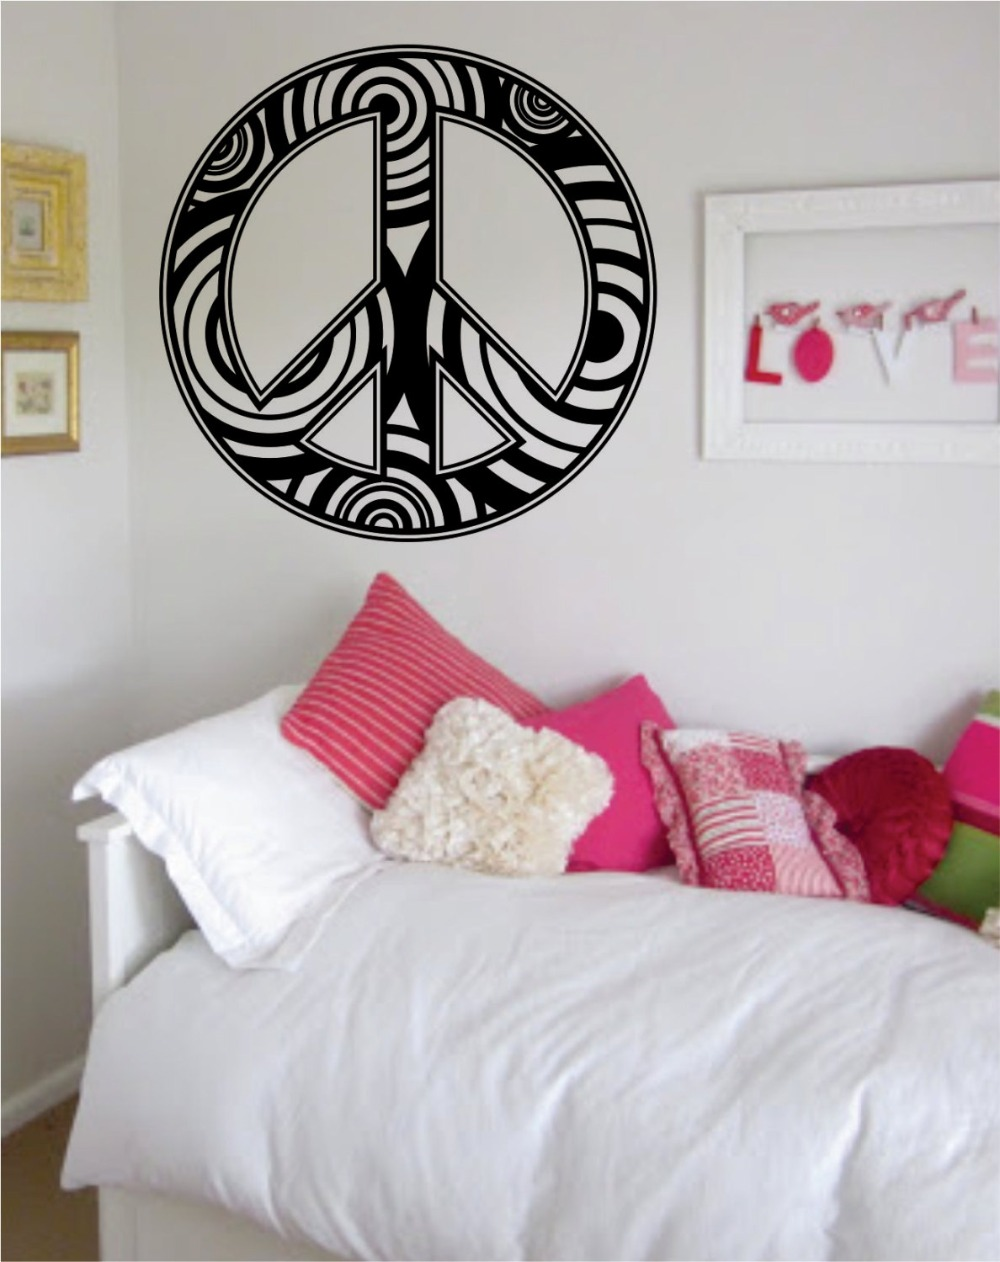 US $9.68 25% OFF|Peace Sign Symbol Wall Decal Vinyl Wall Stickers For Kids  Room Boys Girls Bedroom Peace Pattern Design Home Decor Art DIY SYY579-in  ...